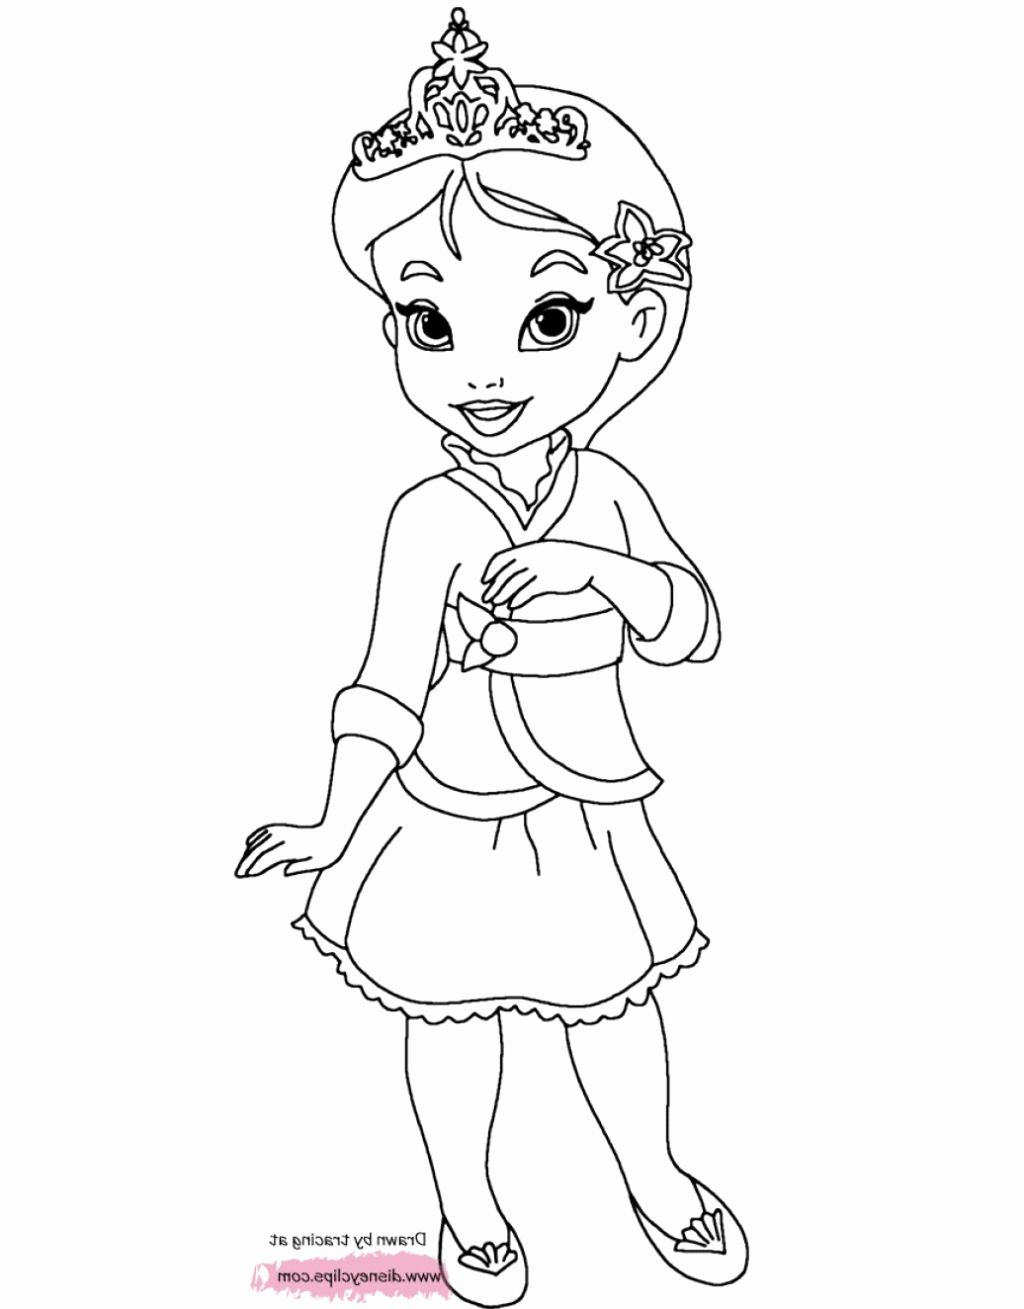 Kids Coloring Pages Baby Princess Disney Princess Coloring Pages Disney Coloring Pages Princess Coloring Pages